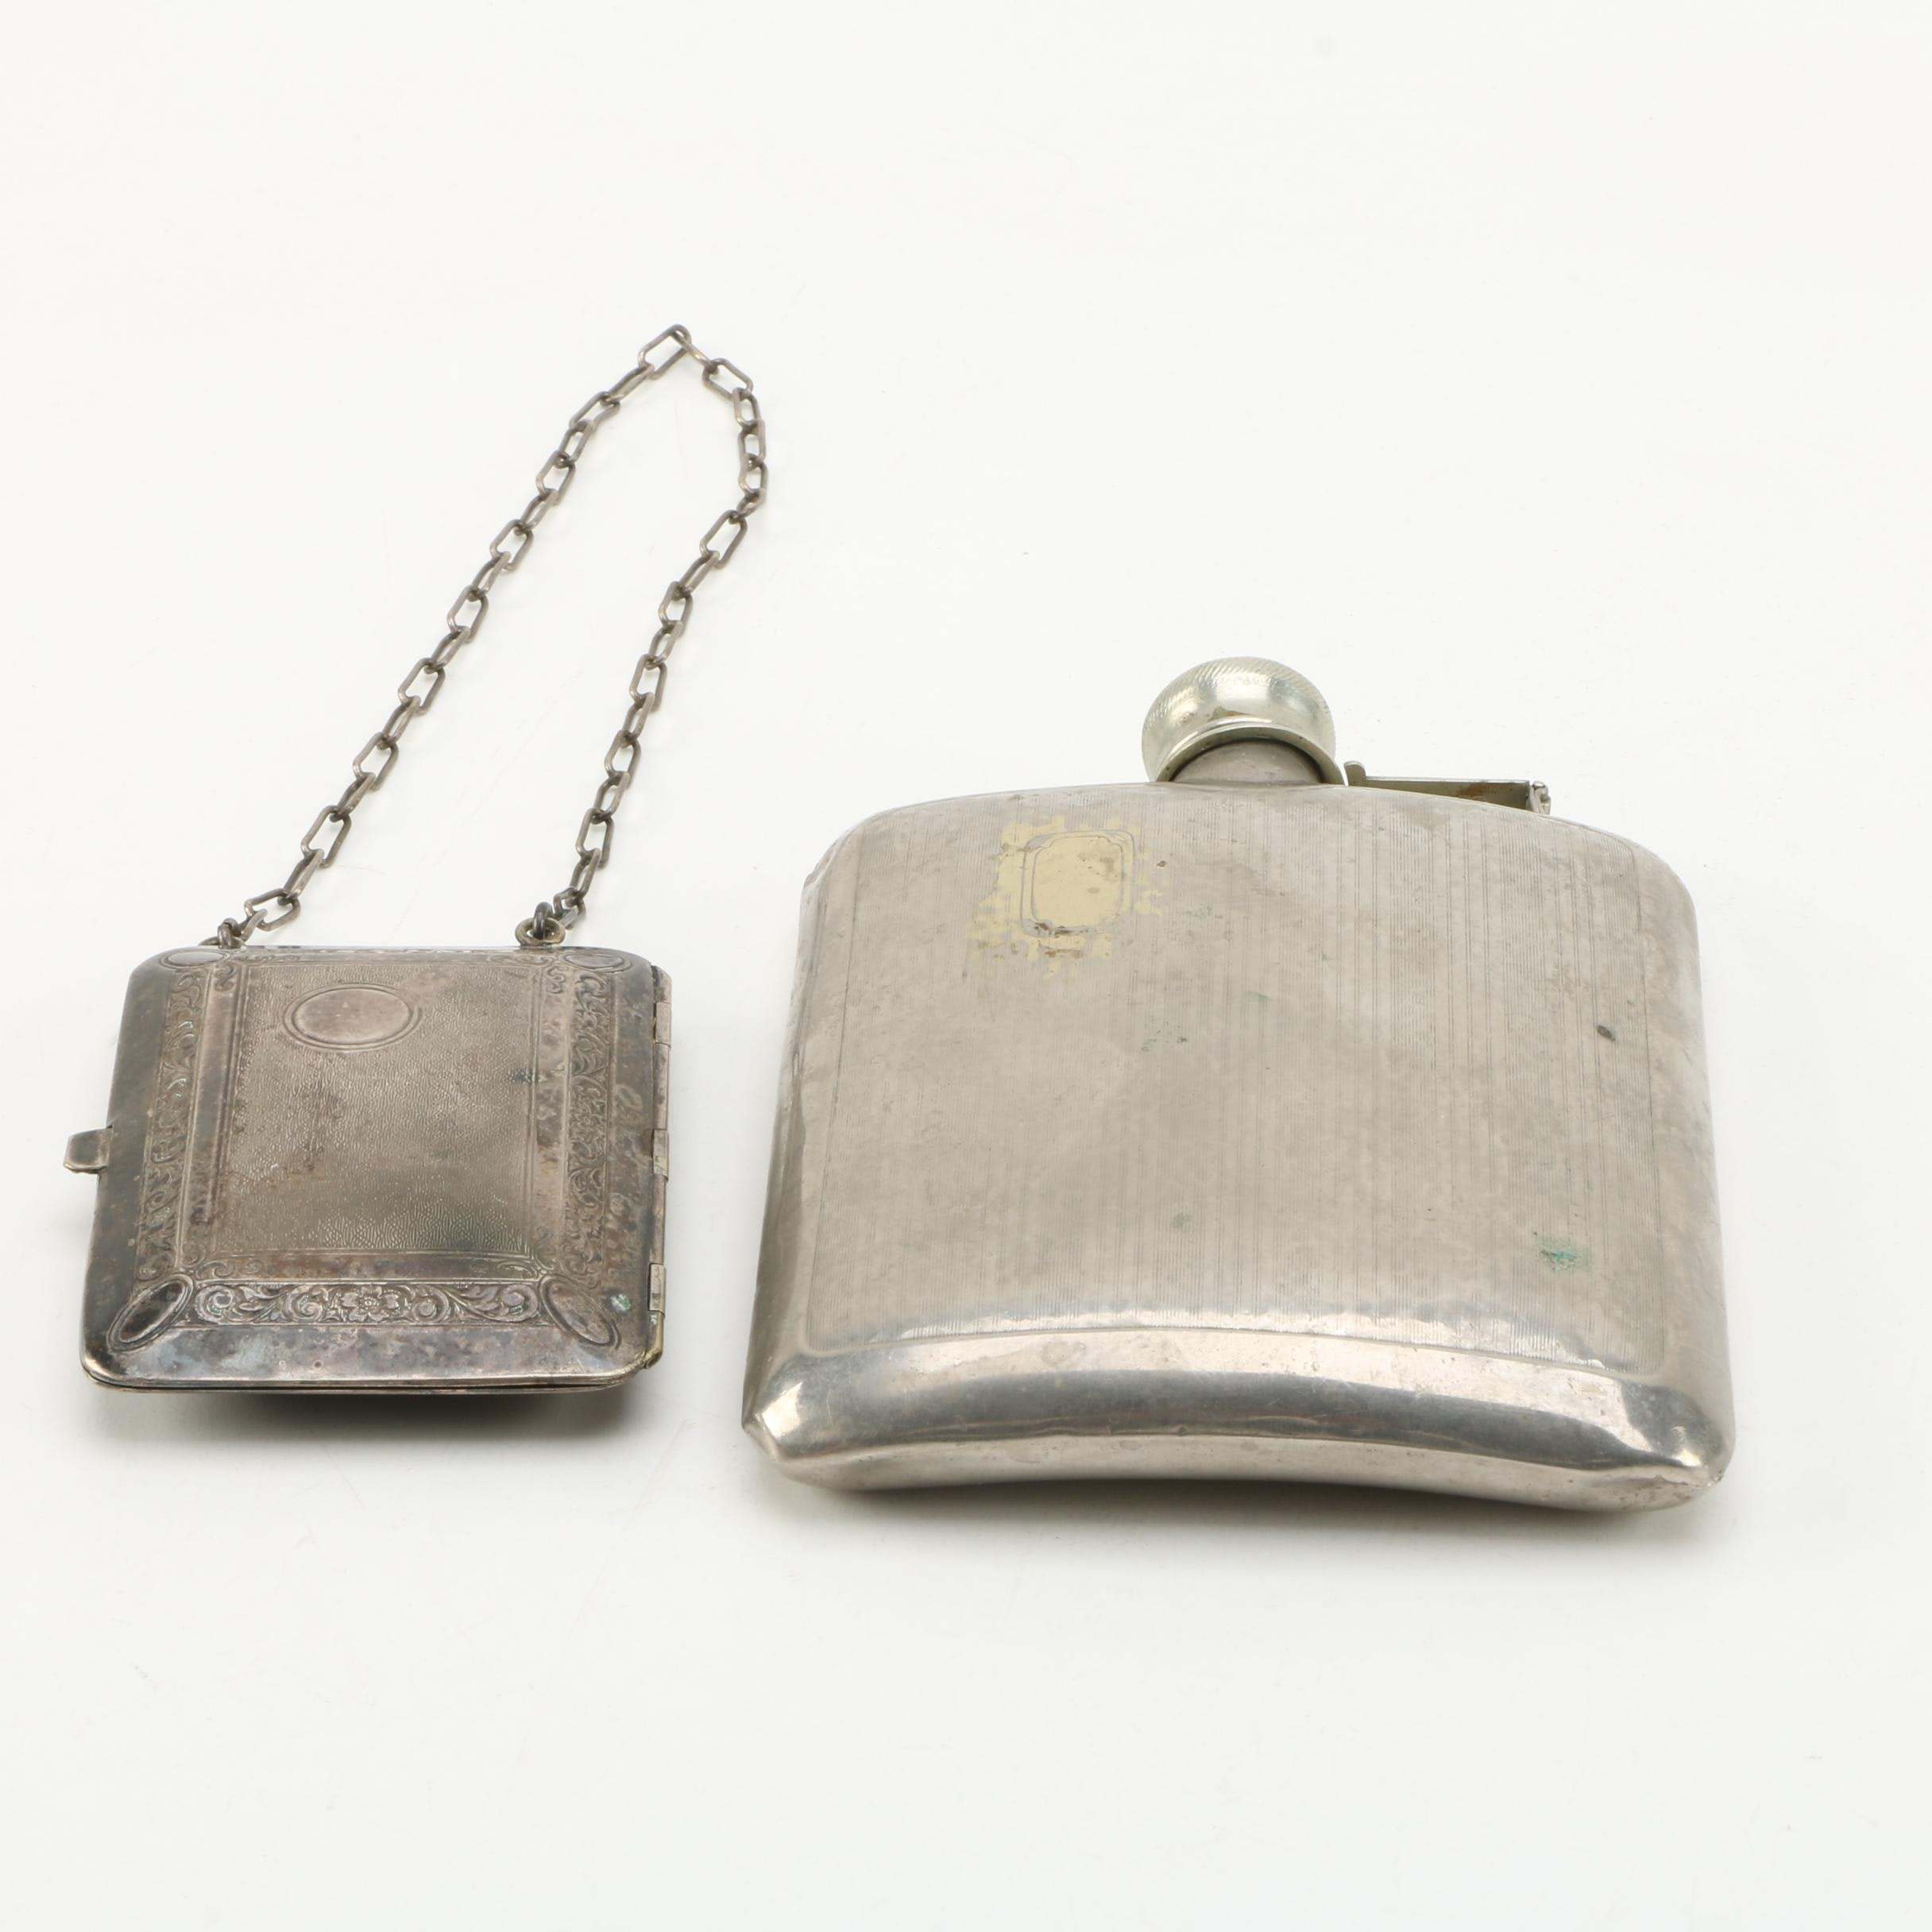 Nickel Silver Flask and Metal Card Holder